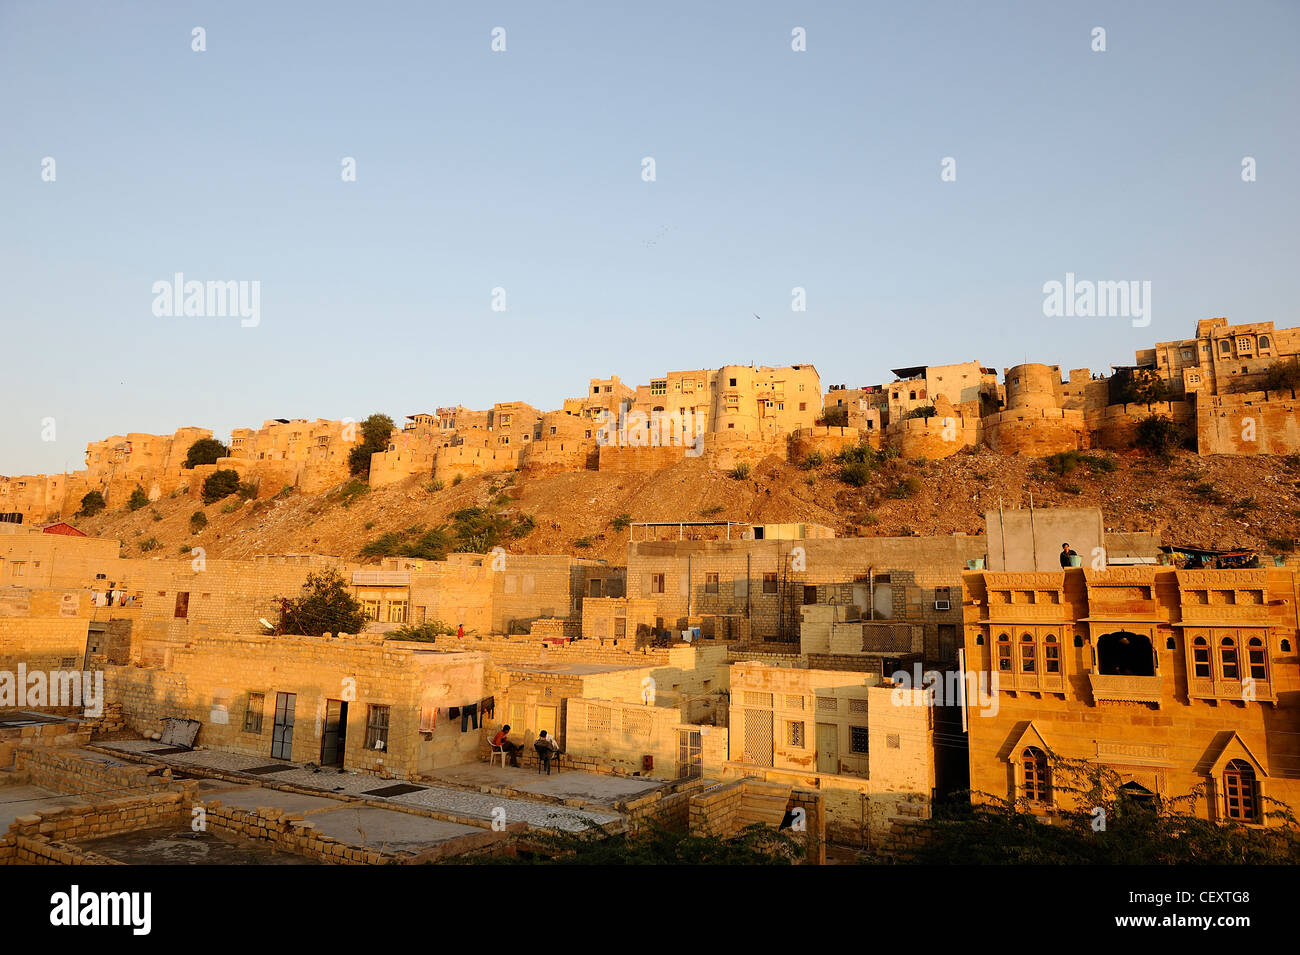 The 900 year-old sandstone fort of Jaisalmer at sunset. Jaisalmer; Rajasthan, India. - Stock Image